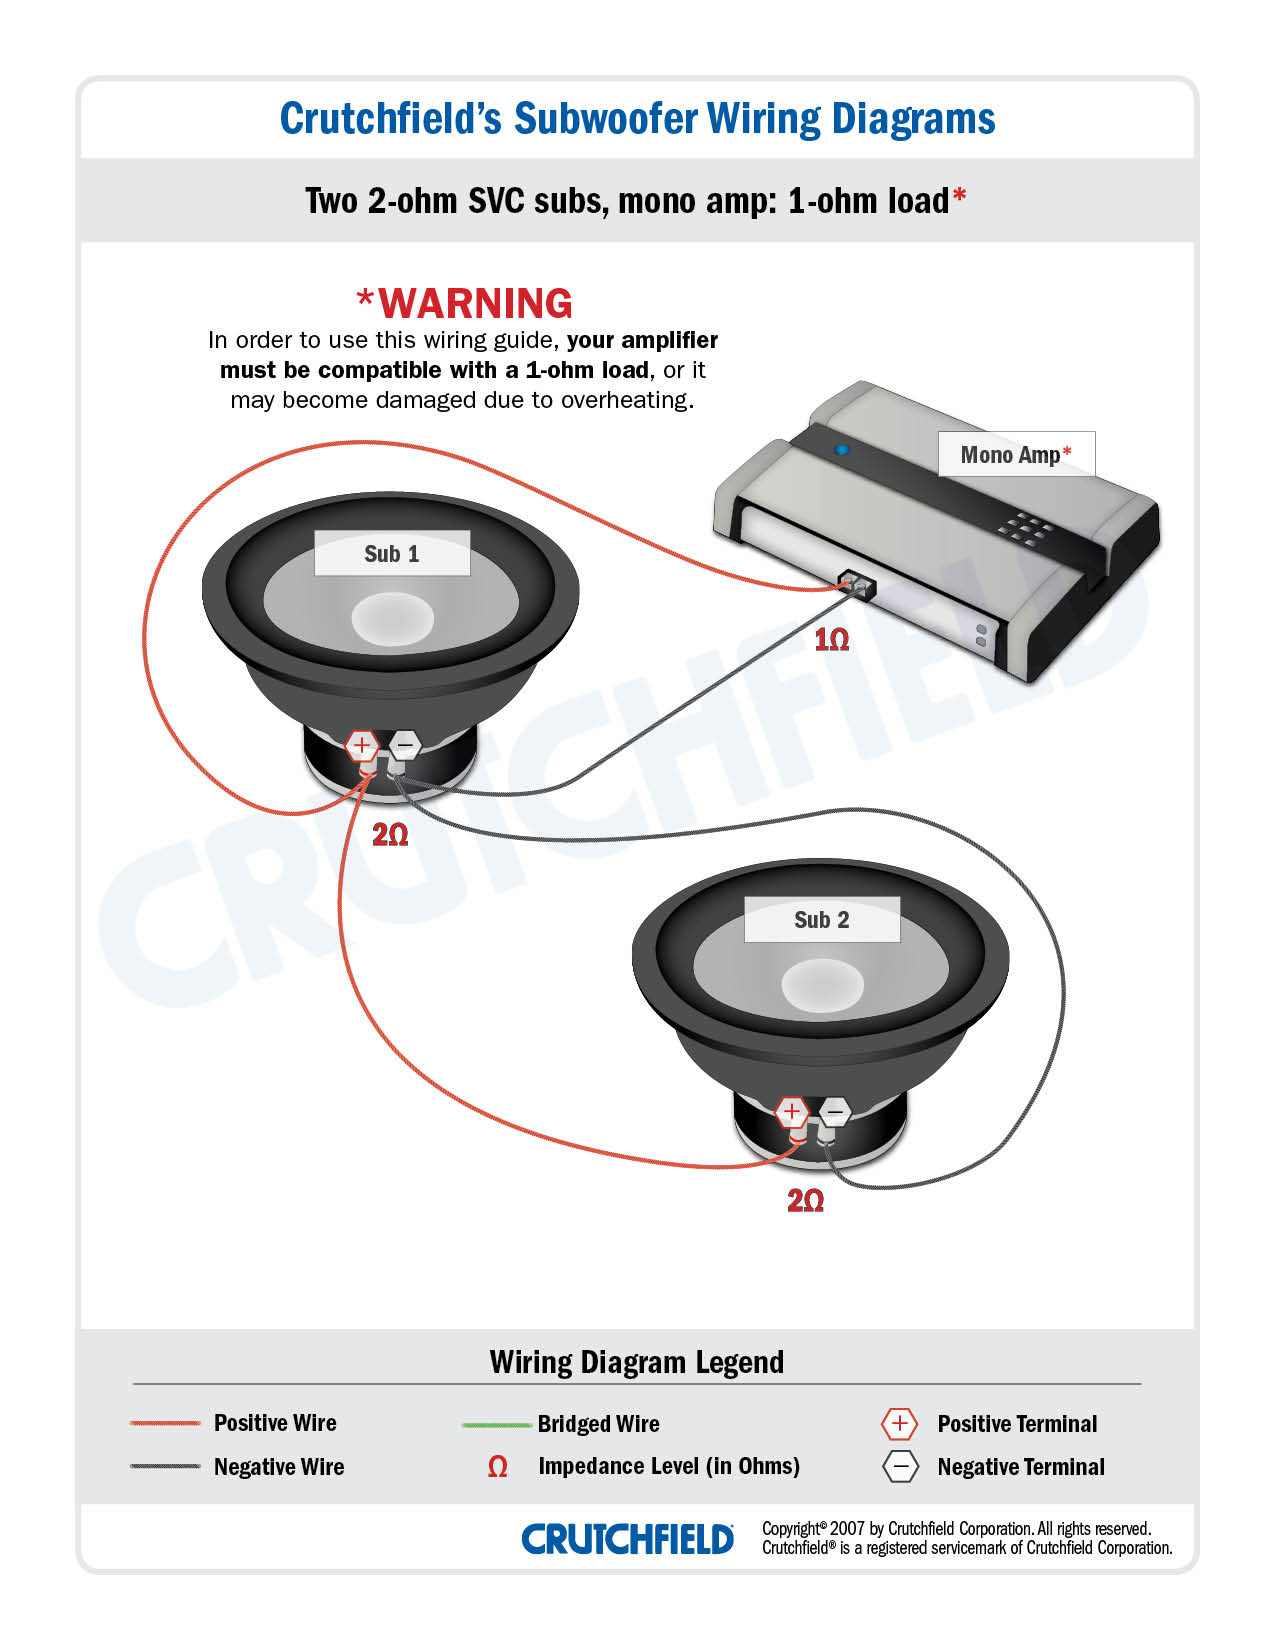 Subwoofer Wiring Guide - Technical Diagrams on